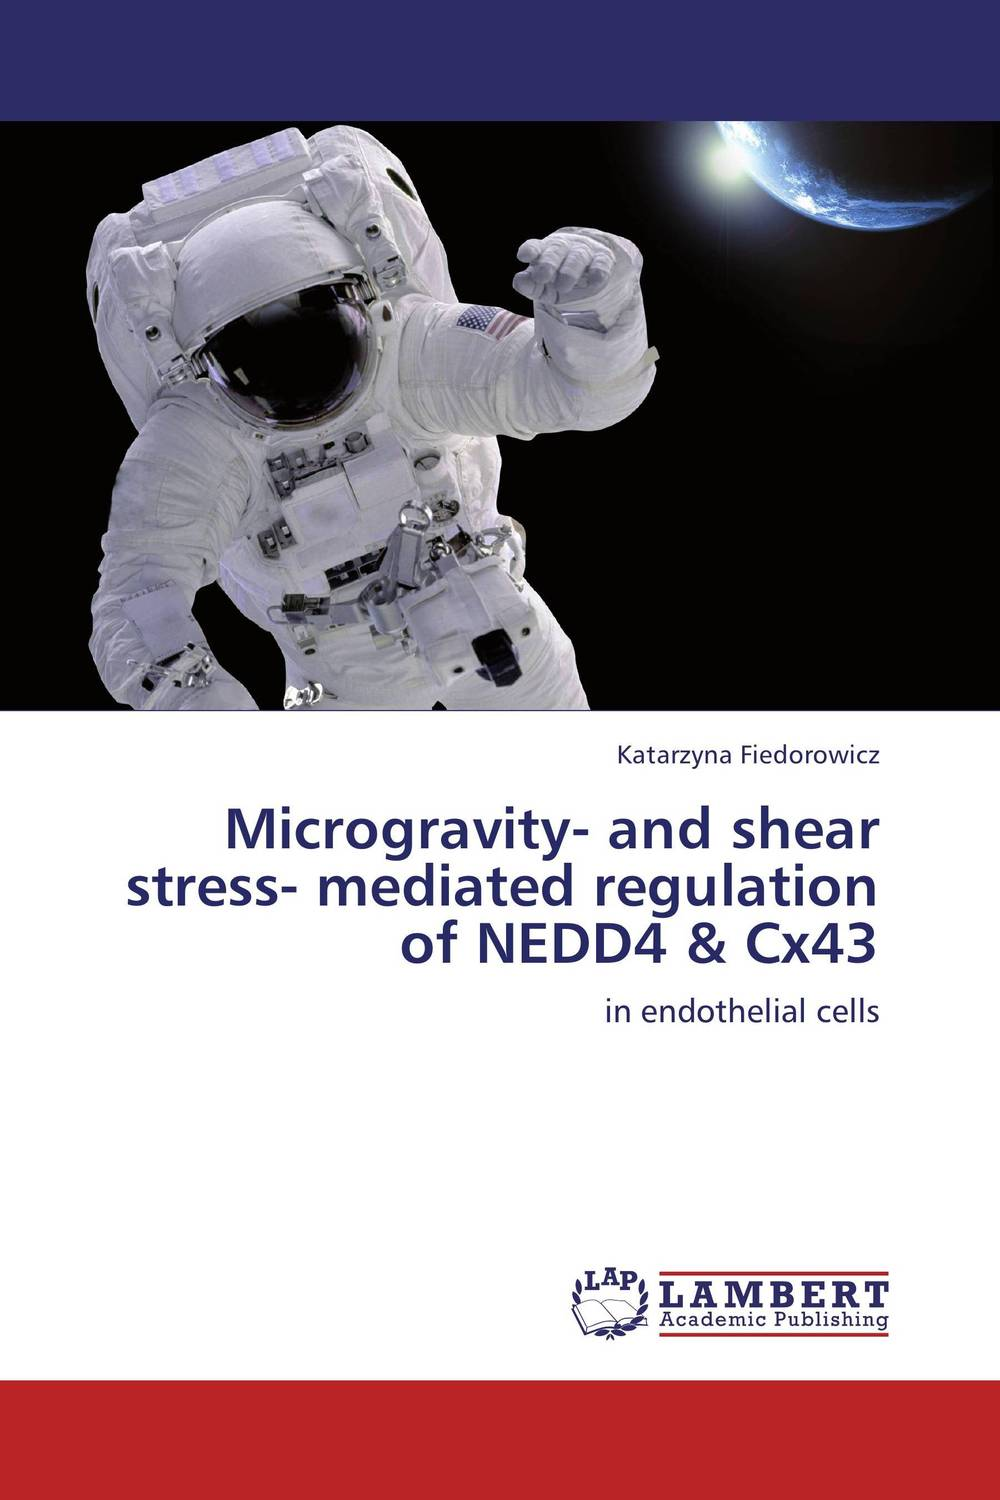 Microgravity- and shear stress- mediated regulation of NEDD4 & Cx43 deciphering the role of yap4 phosphorylation under stress conditions